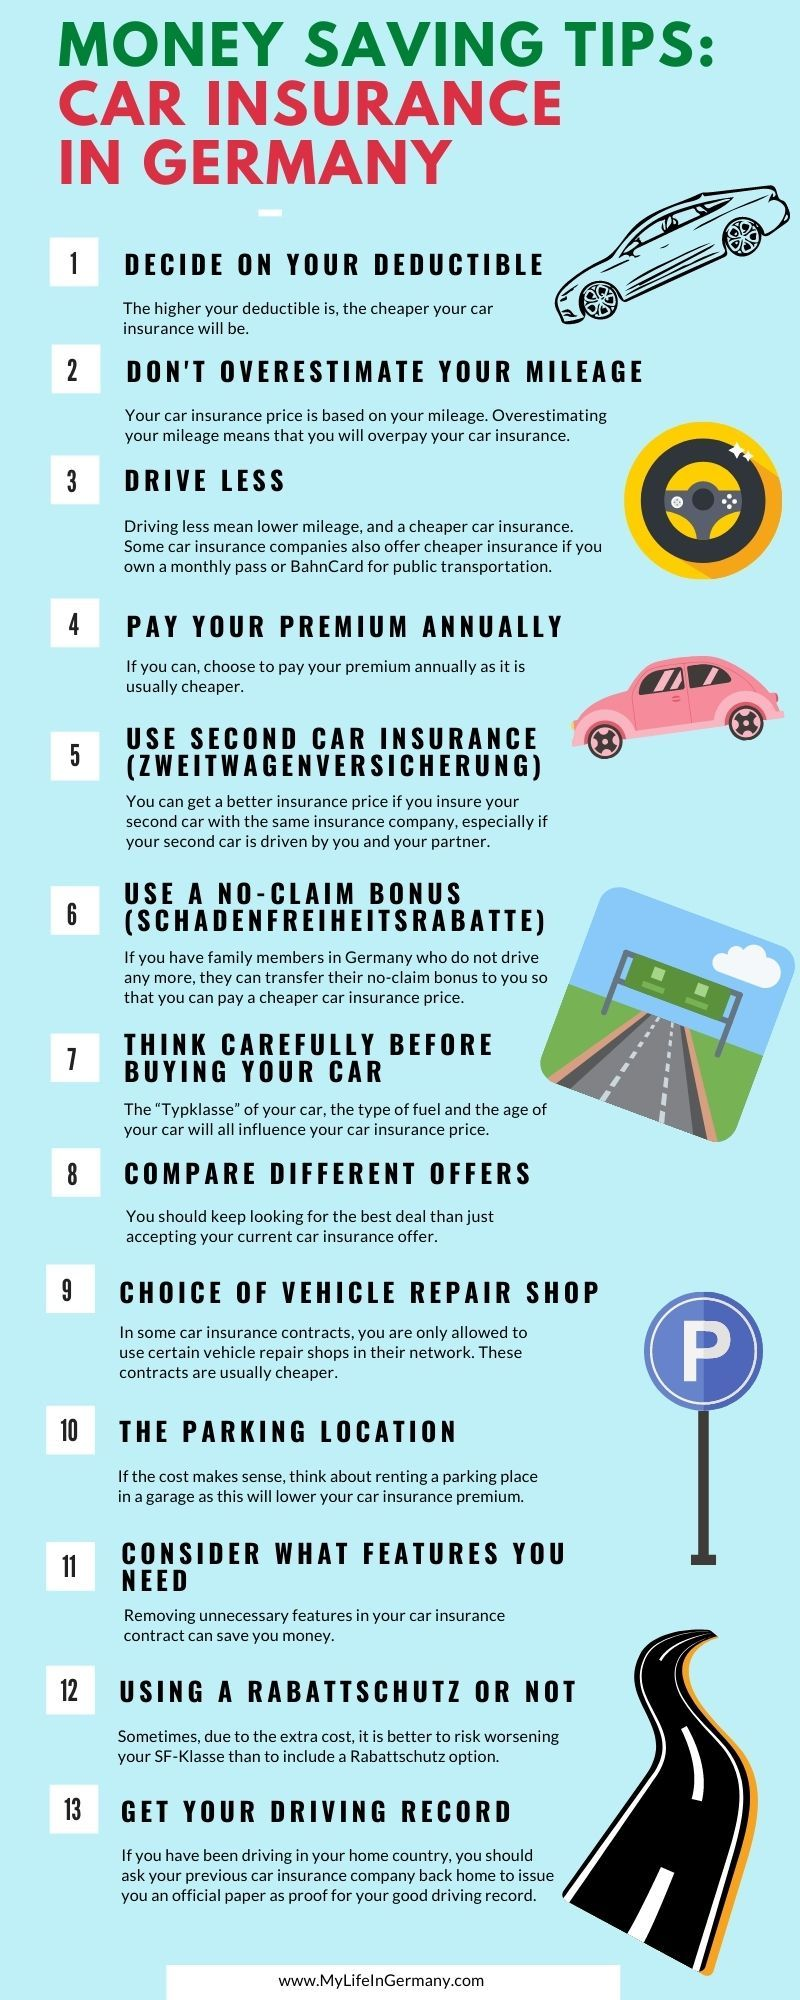 Car Insurance In Germany 13 Ways To Save Money In 2020 Germany Car Insurance Ways To Save Money